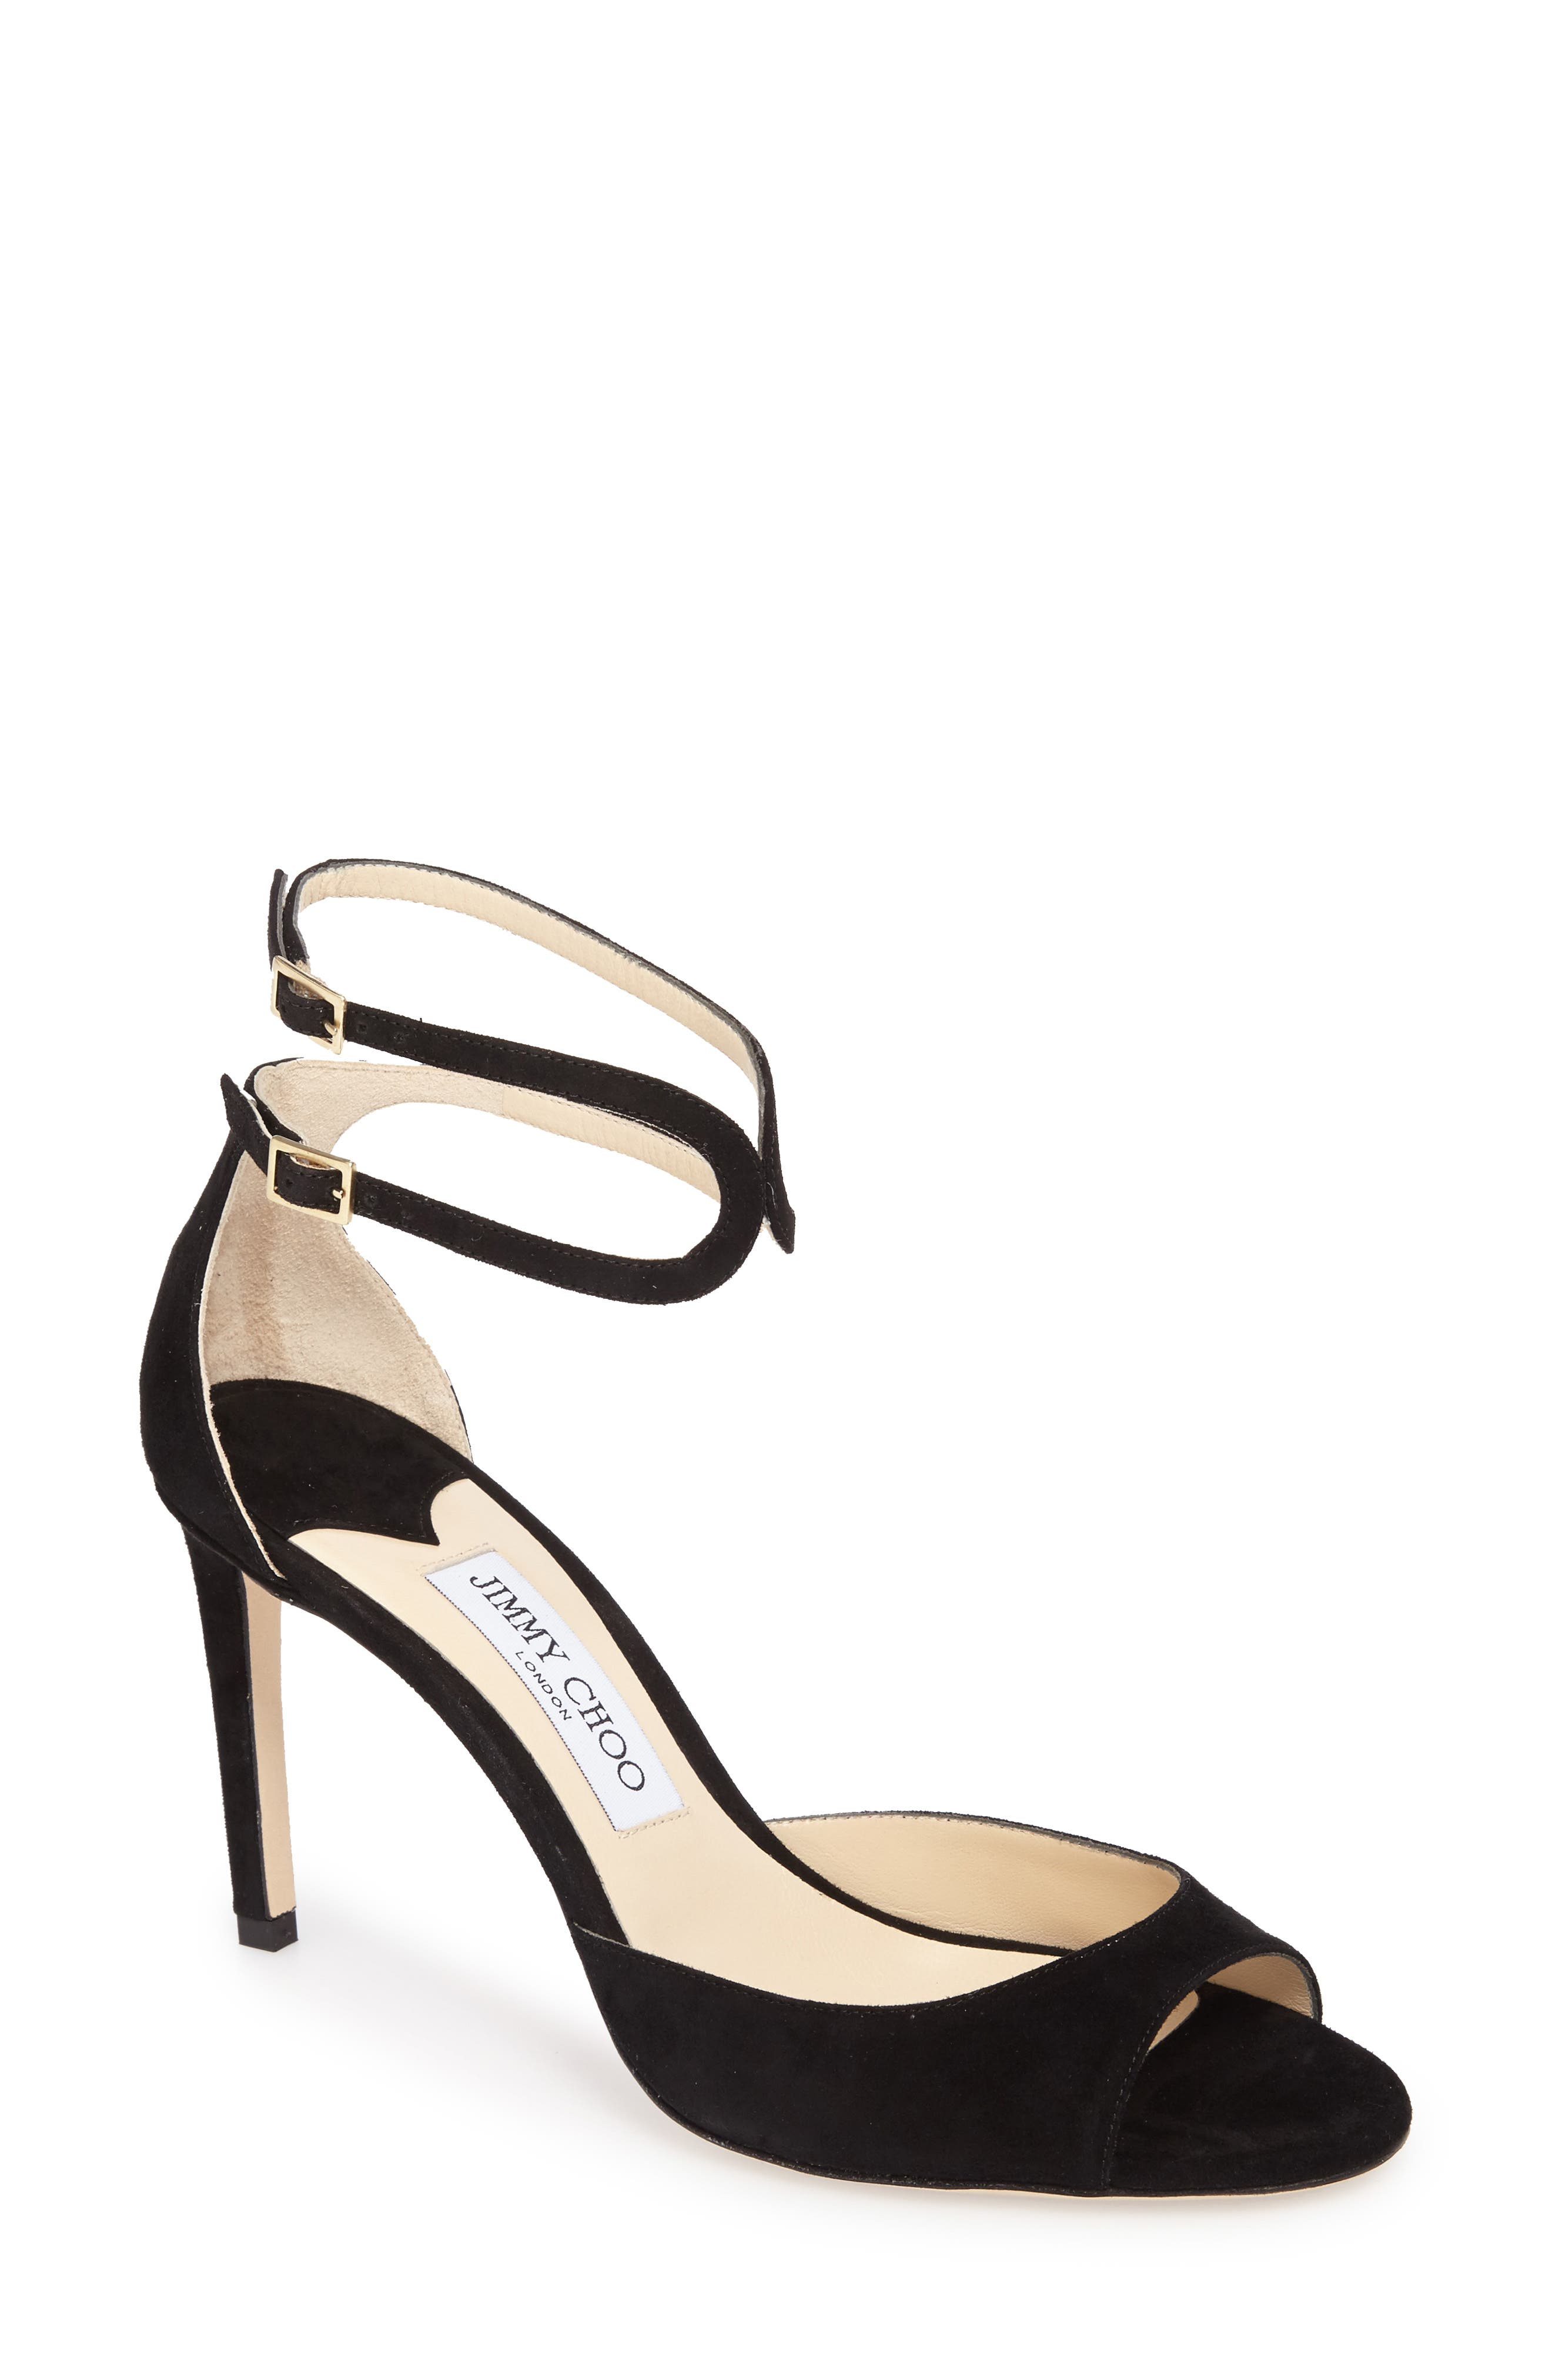 b0f894570ca Jimmy Choo Ankle Strap Sandals for Women